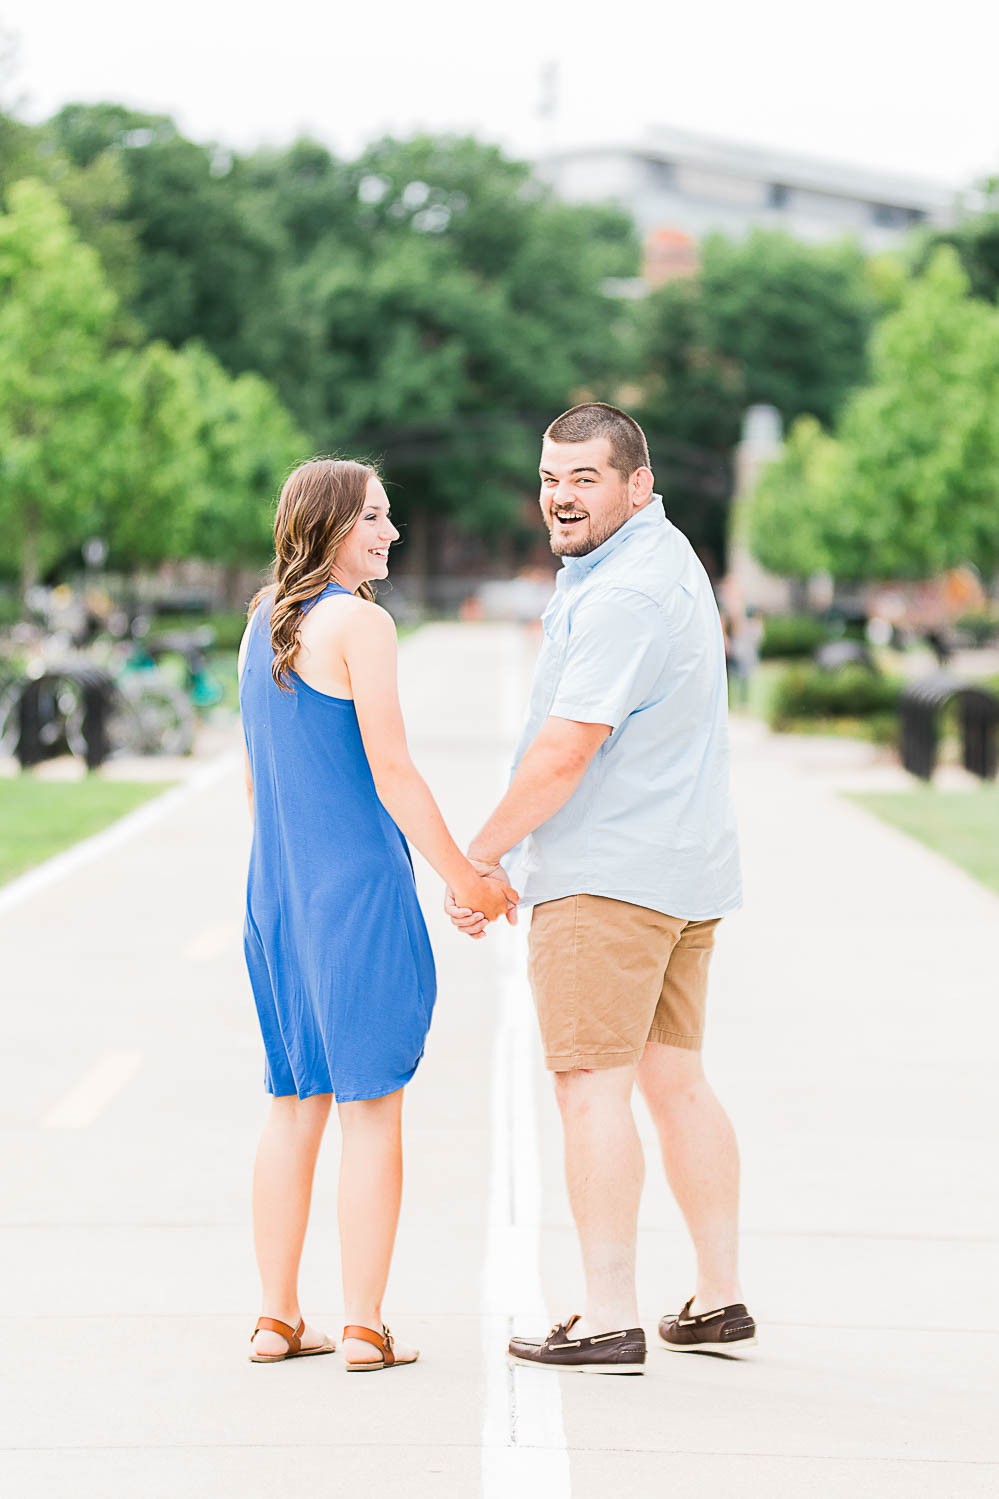 fairfield lake park engagement-6.jpg